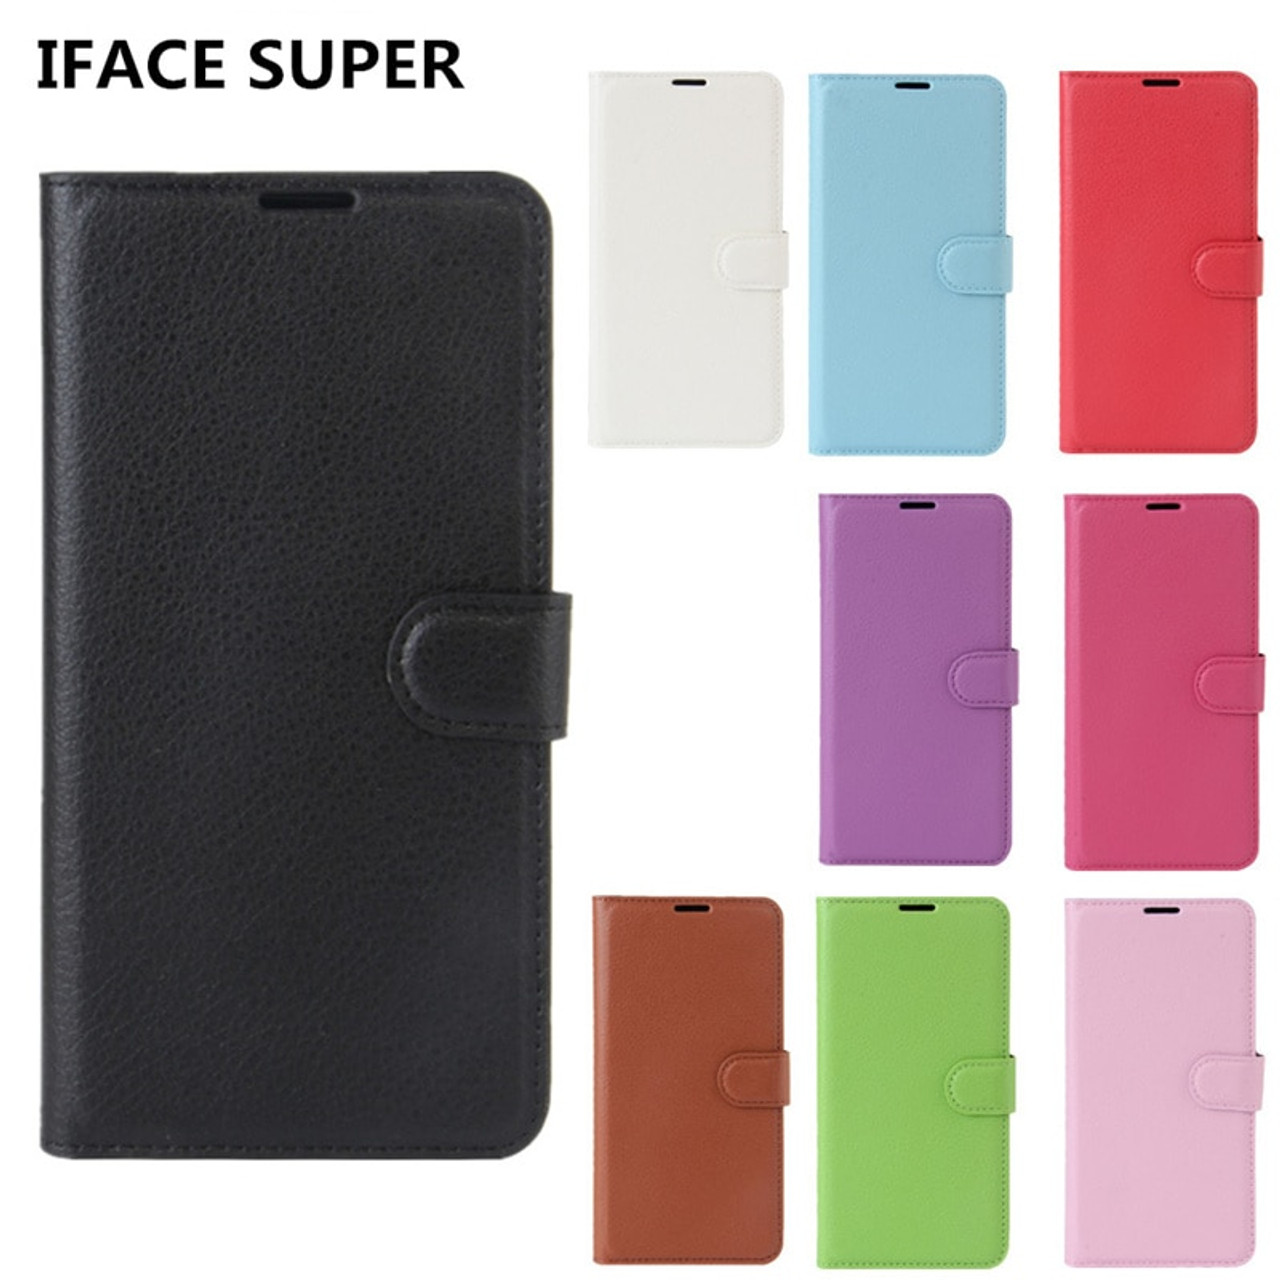 size 40 96fc3 190dc For Alcatel U3 3G Case Alcatel U3 3G Case Flip PU Leather Cover Phone Case  For Alcatel U3 3G 4049D